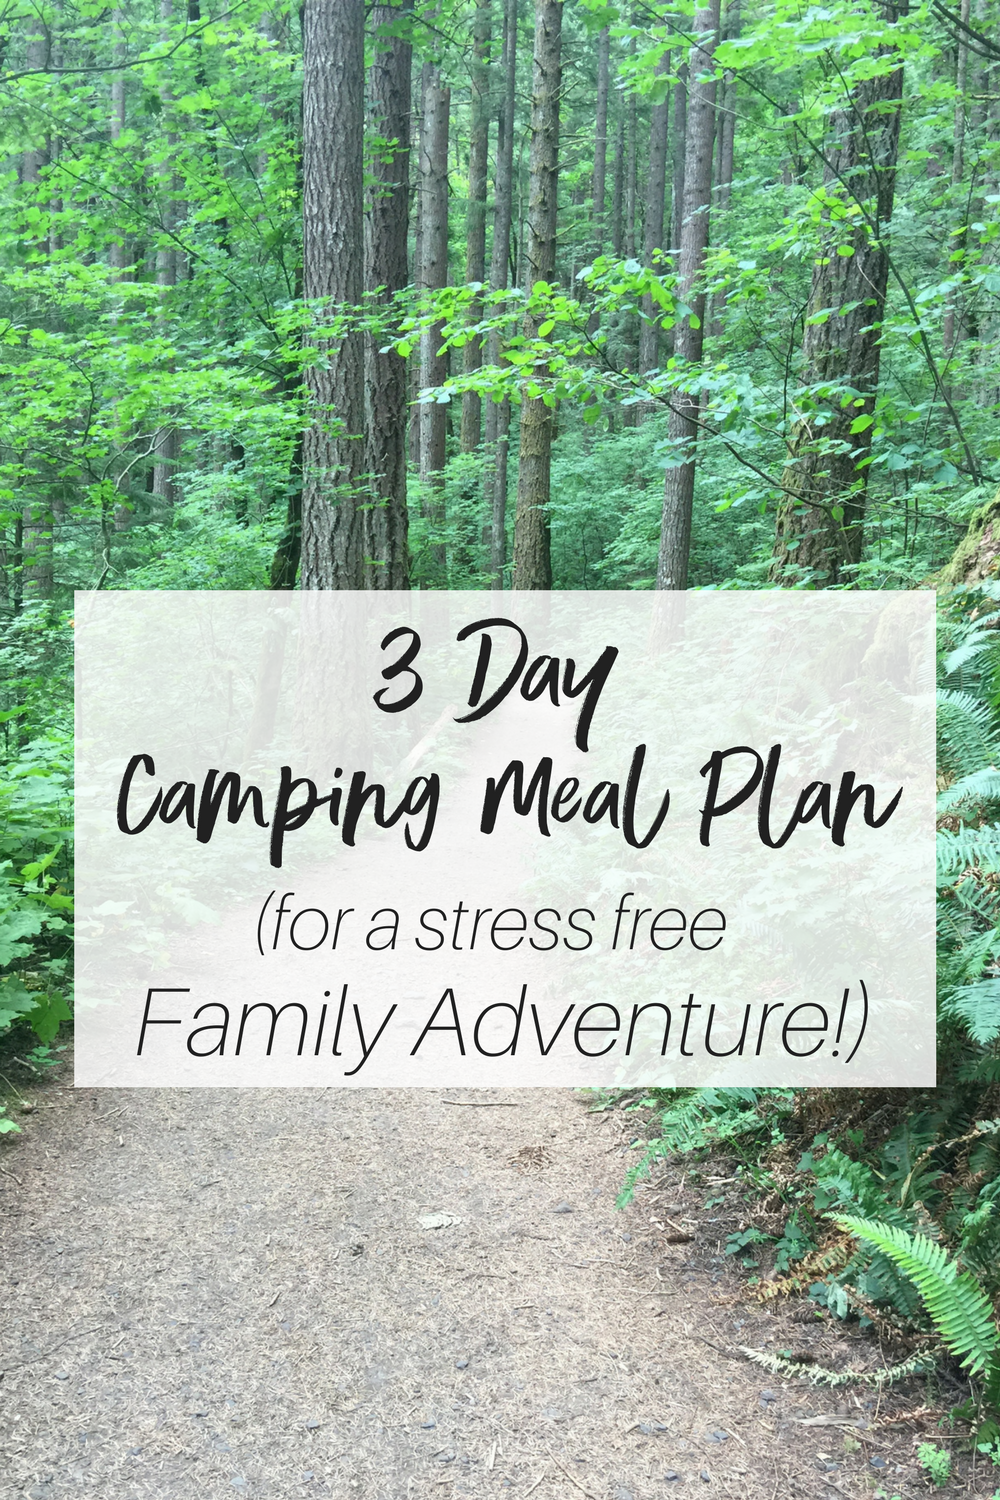 3 Day Camping Meal Plan   Camping meal planning, Family ...